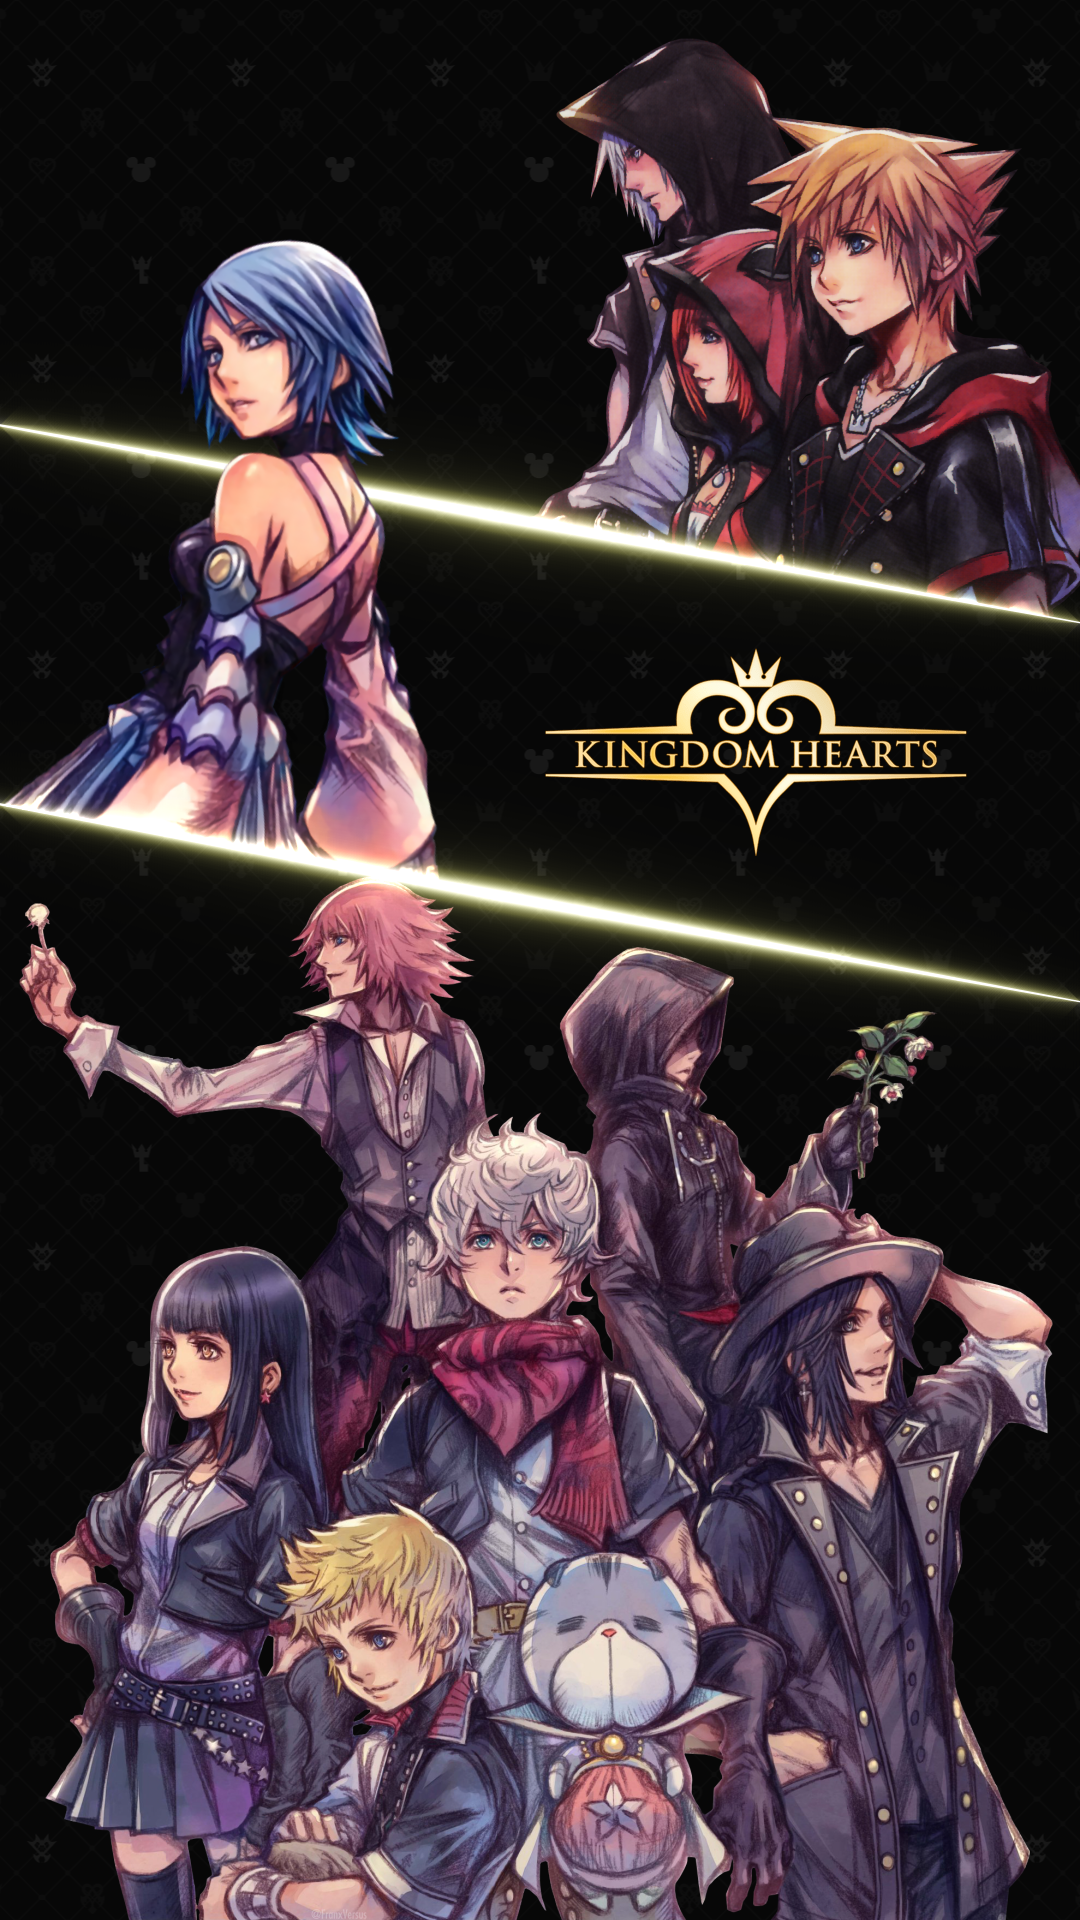 Kingdom Hearts Mobile Wallpaper Kingdom Hearts Wallpaper Kingdom Hearts Kingdom Hearts Fanart